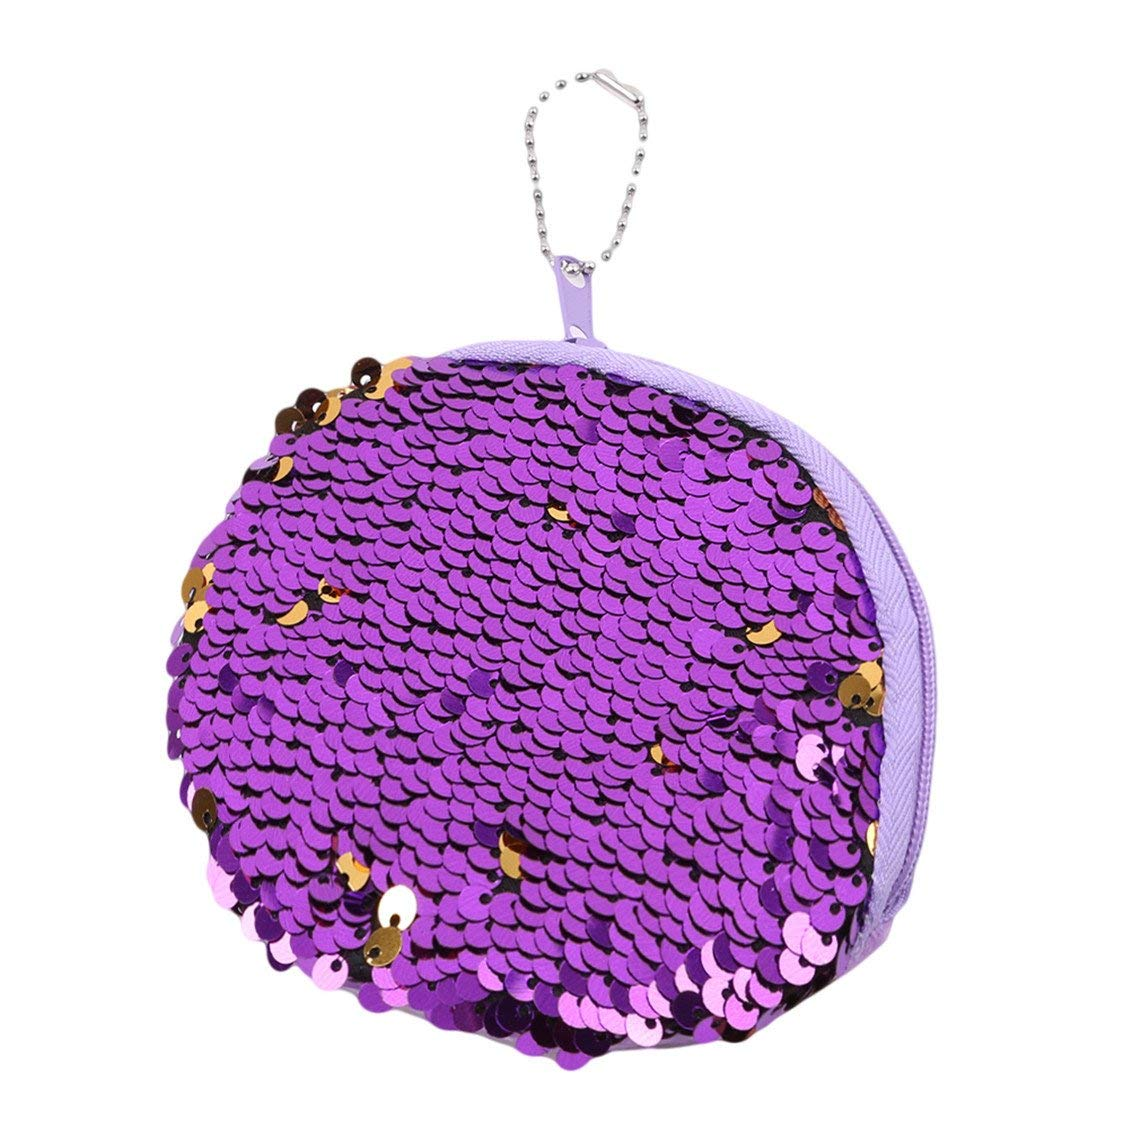 Rurah Portable Mermaid Sequin Coin Purse Mini Glitter Wallet Shiny Clutch Pouch Zip with Key Chain Wallet,purple